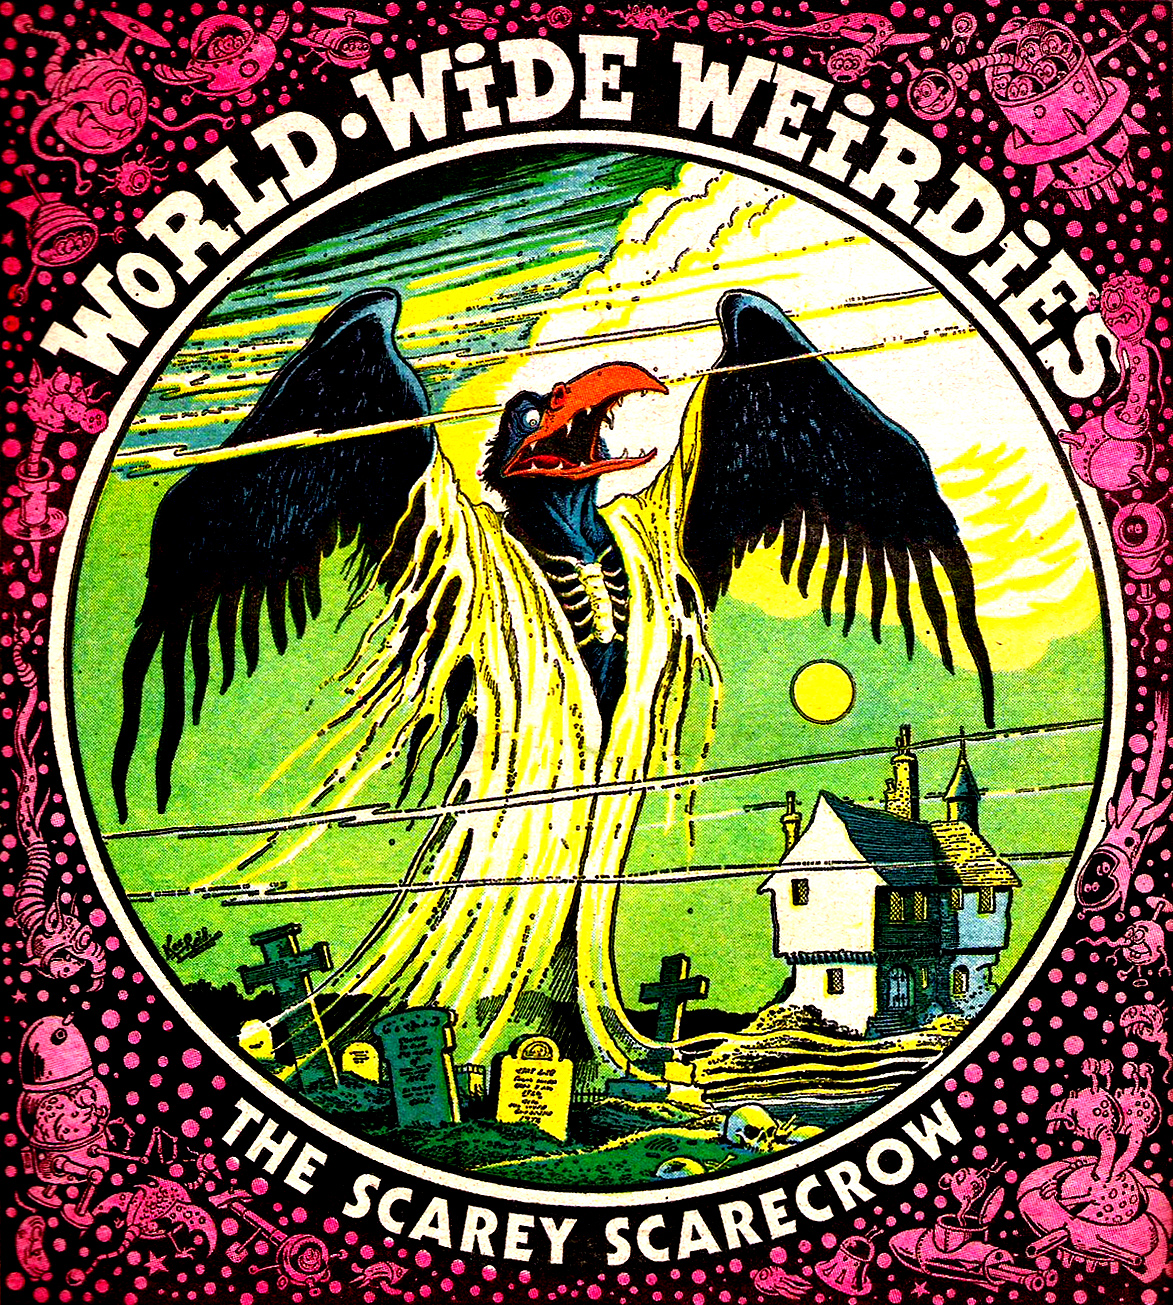 Ken Reid - World Wide Weirdies 32